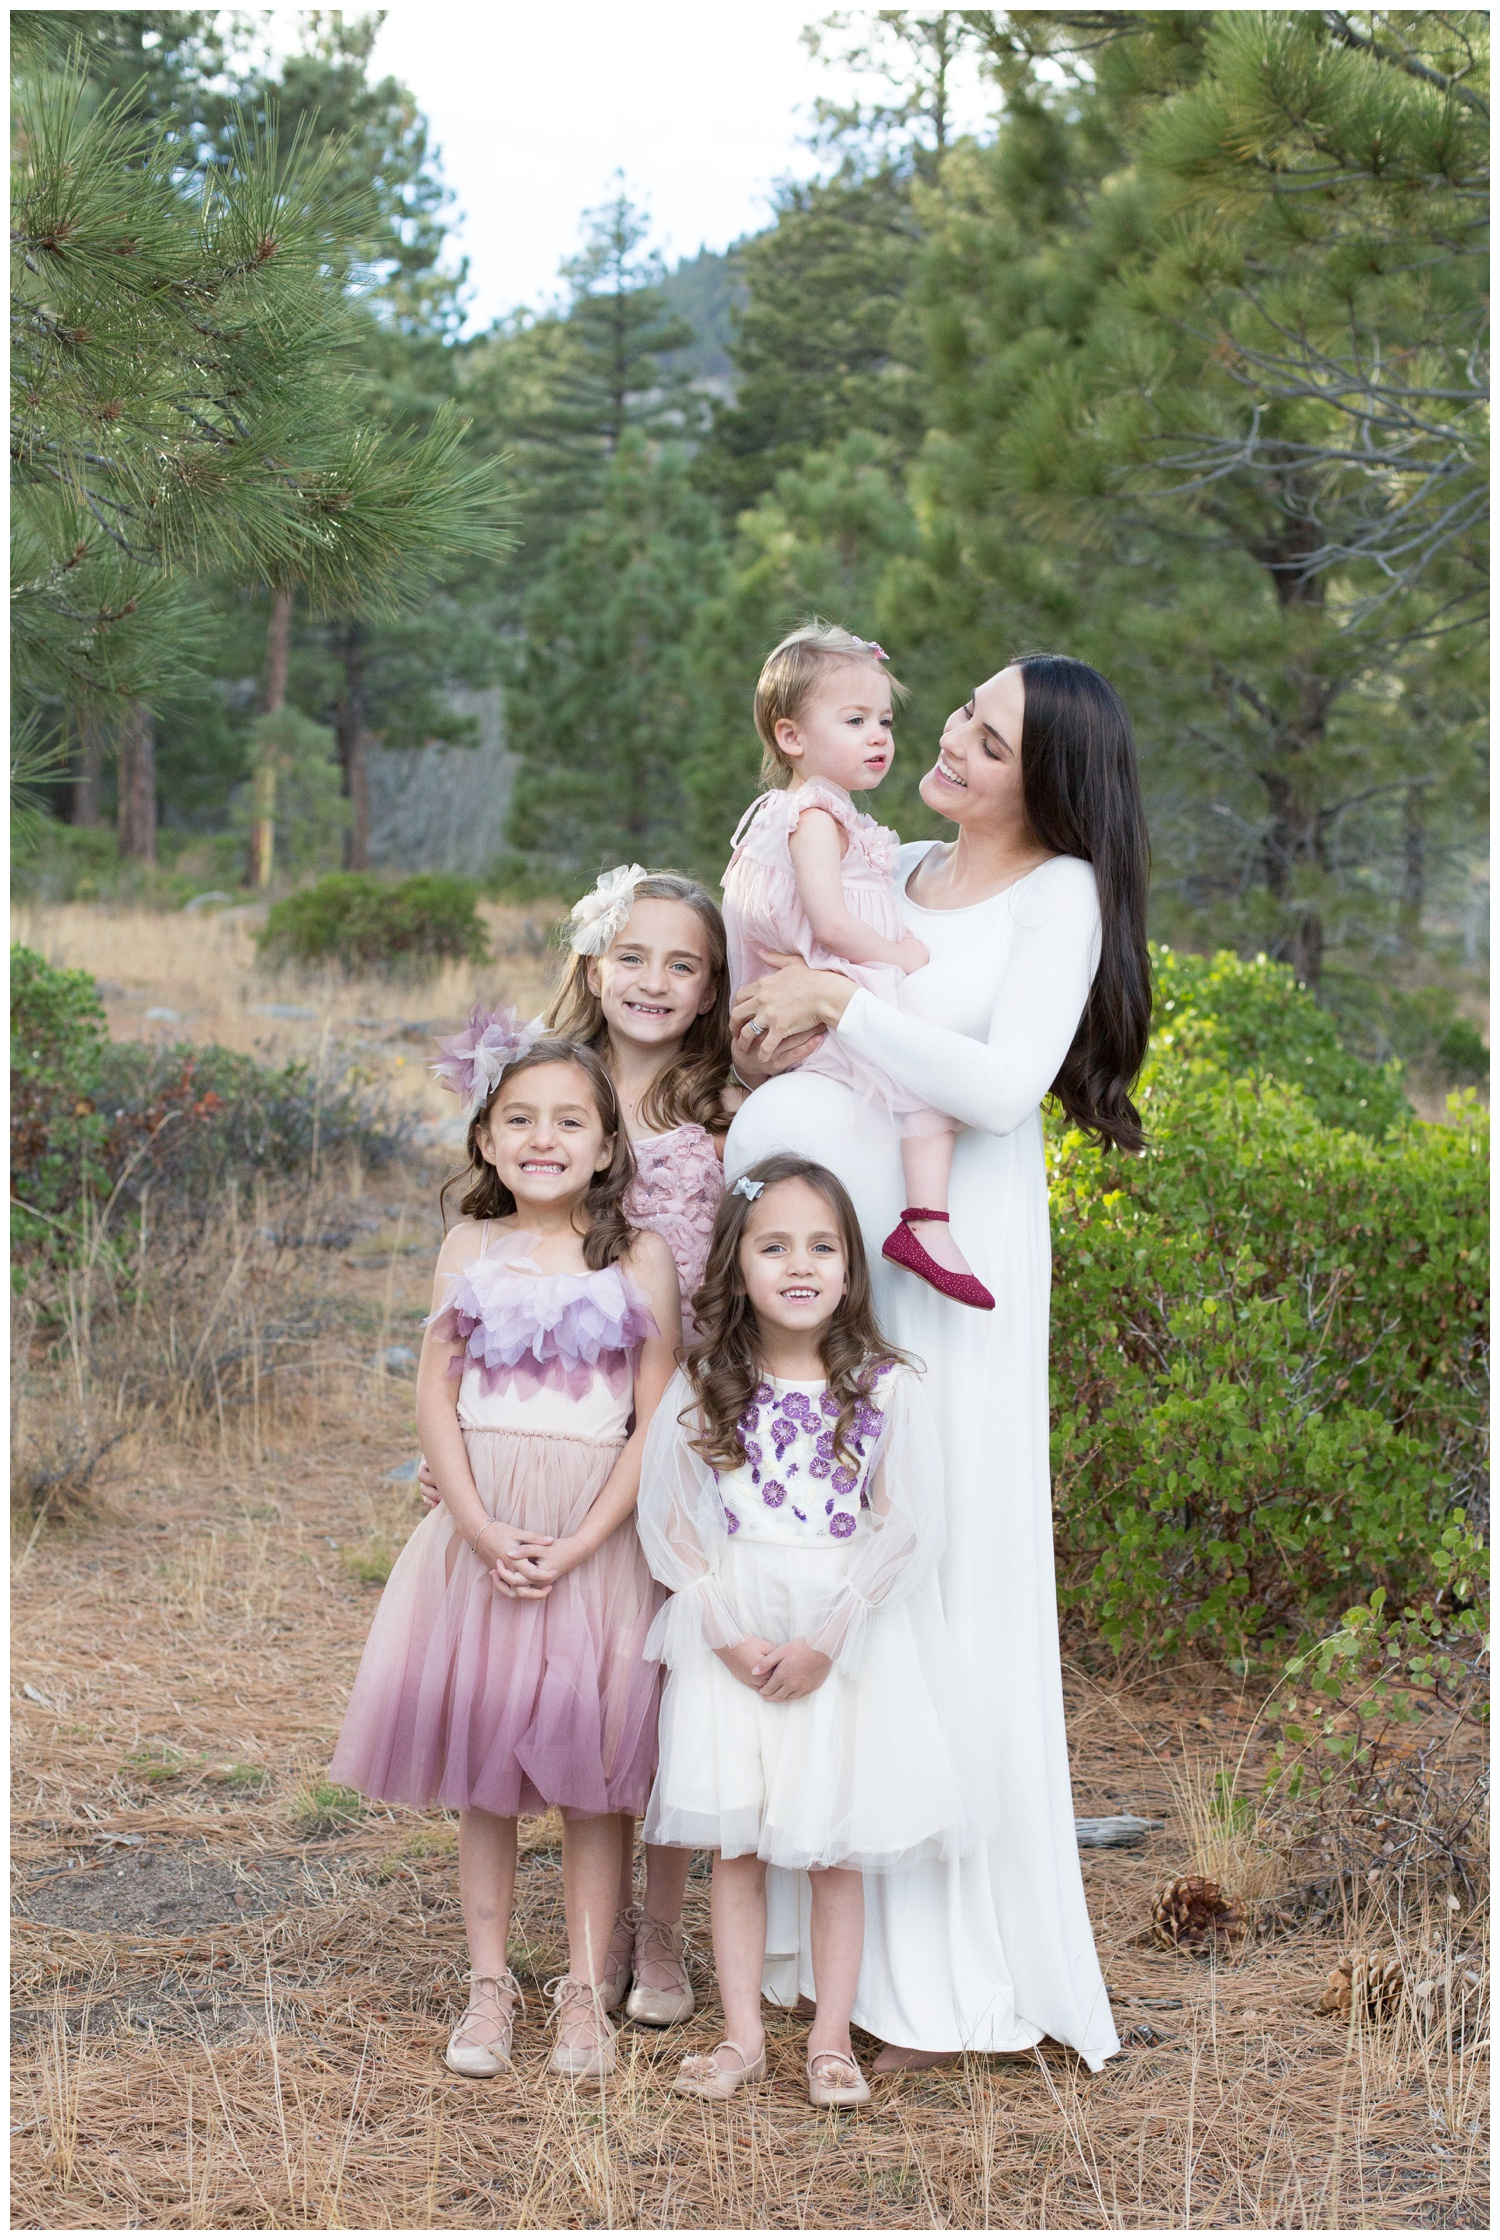 I love how these dresses rented from Rainey's Closet coordinate rather than all of them being in the exact same dress! It allows for each girl to show their own personality!